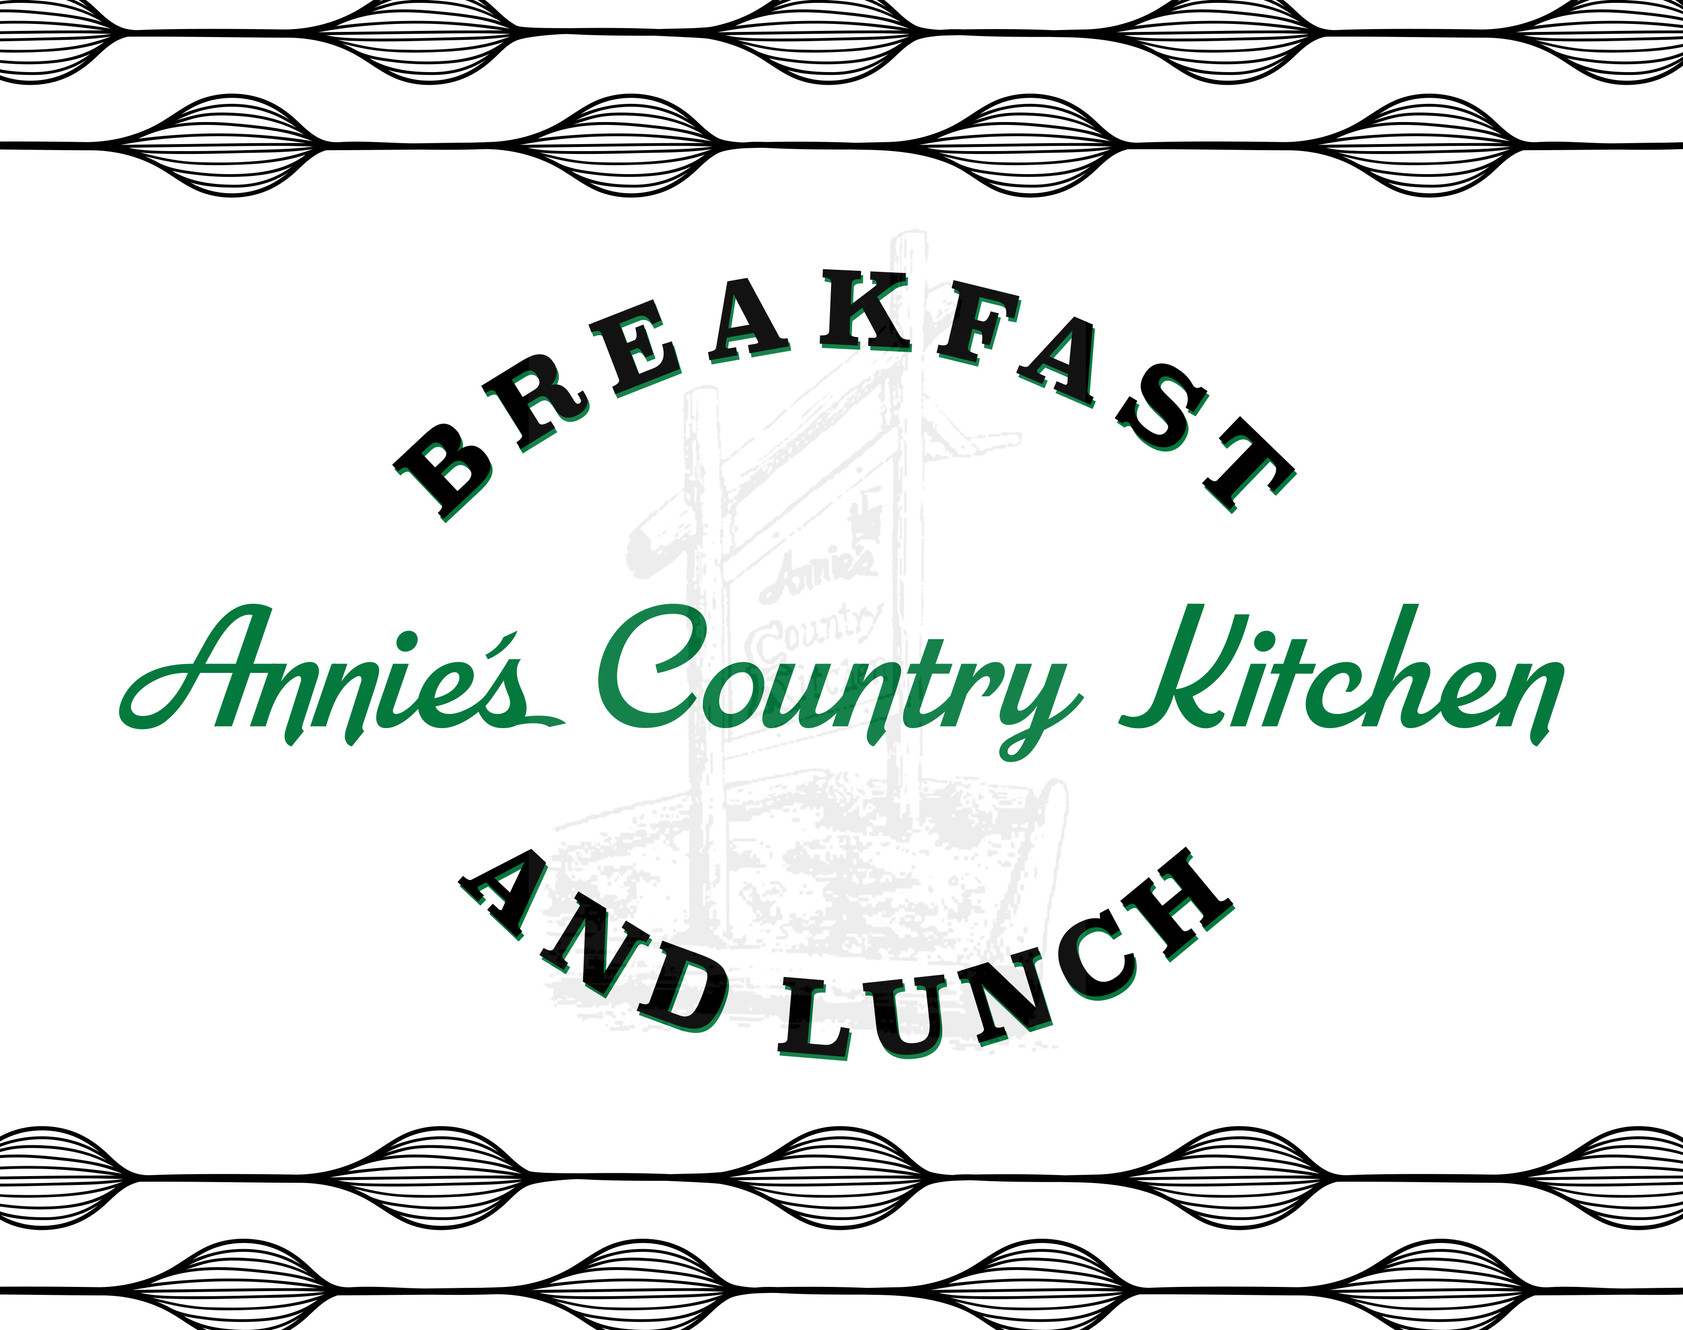 Breakfast And Lunch And Dinner Annie S Country Kitchen United States